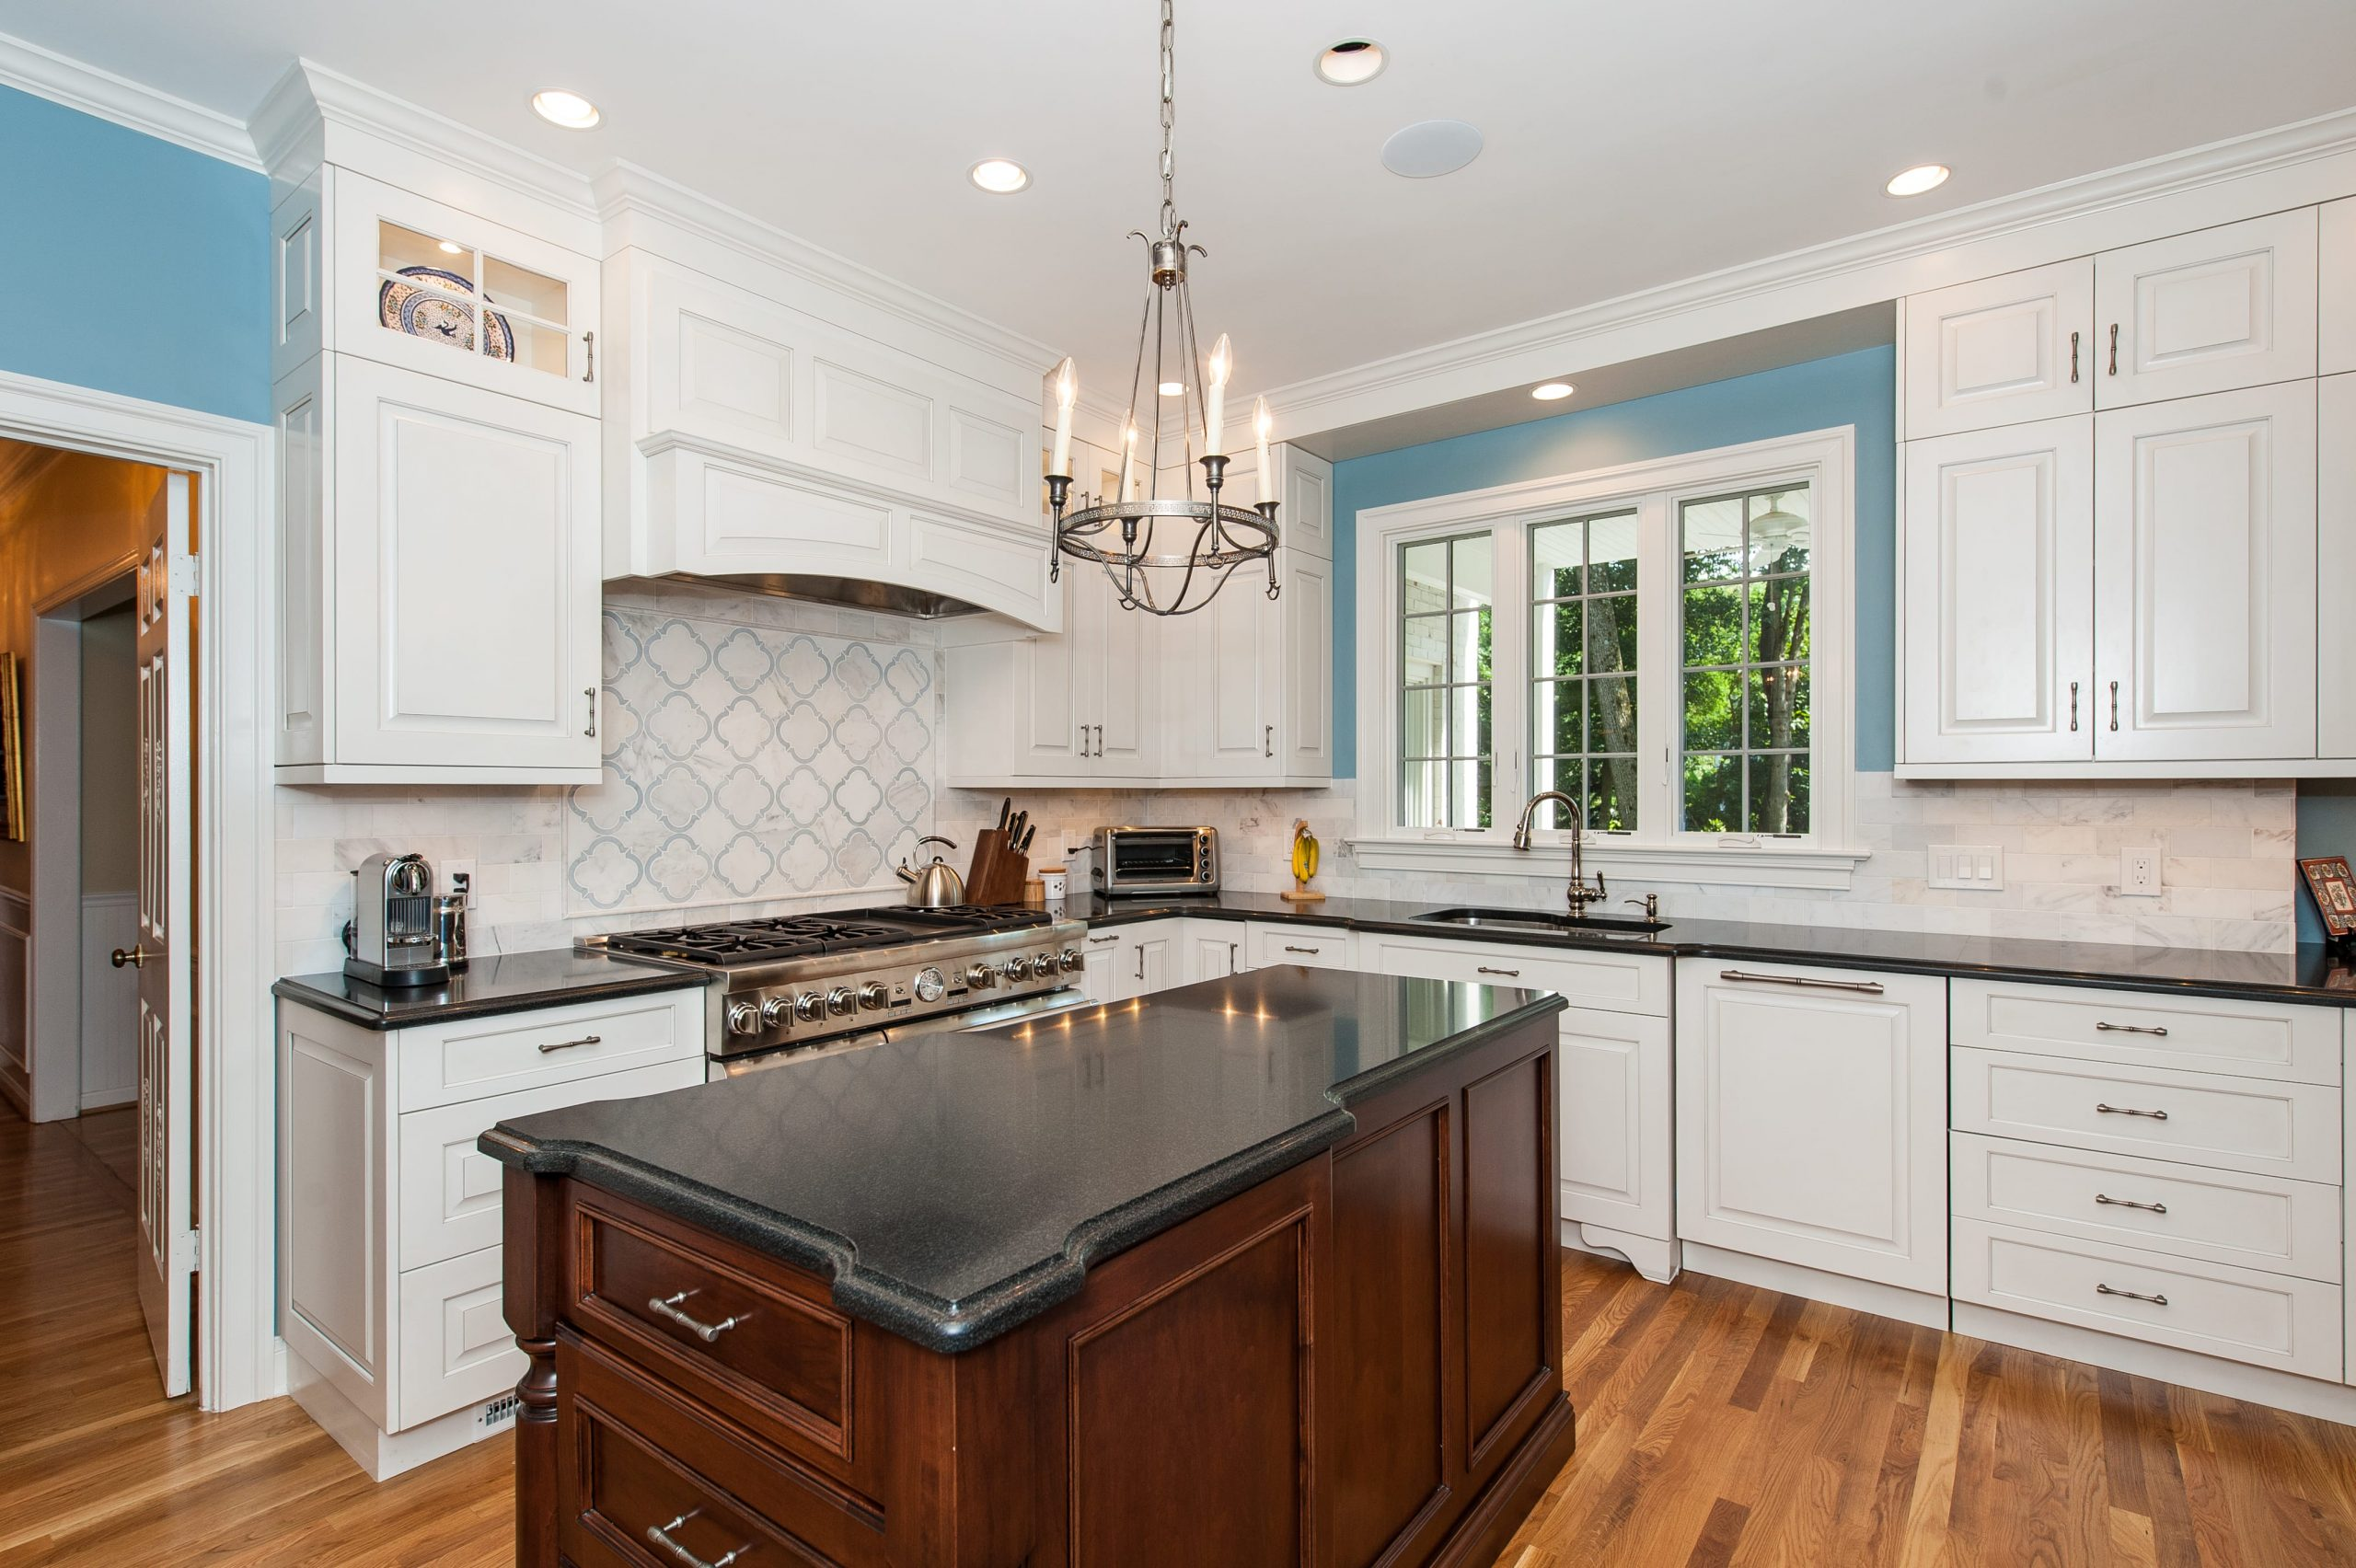 Finecraft Building - Kitchen and Remodeling